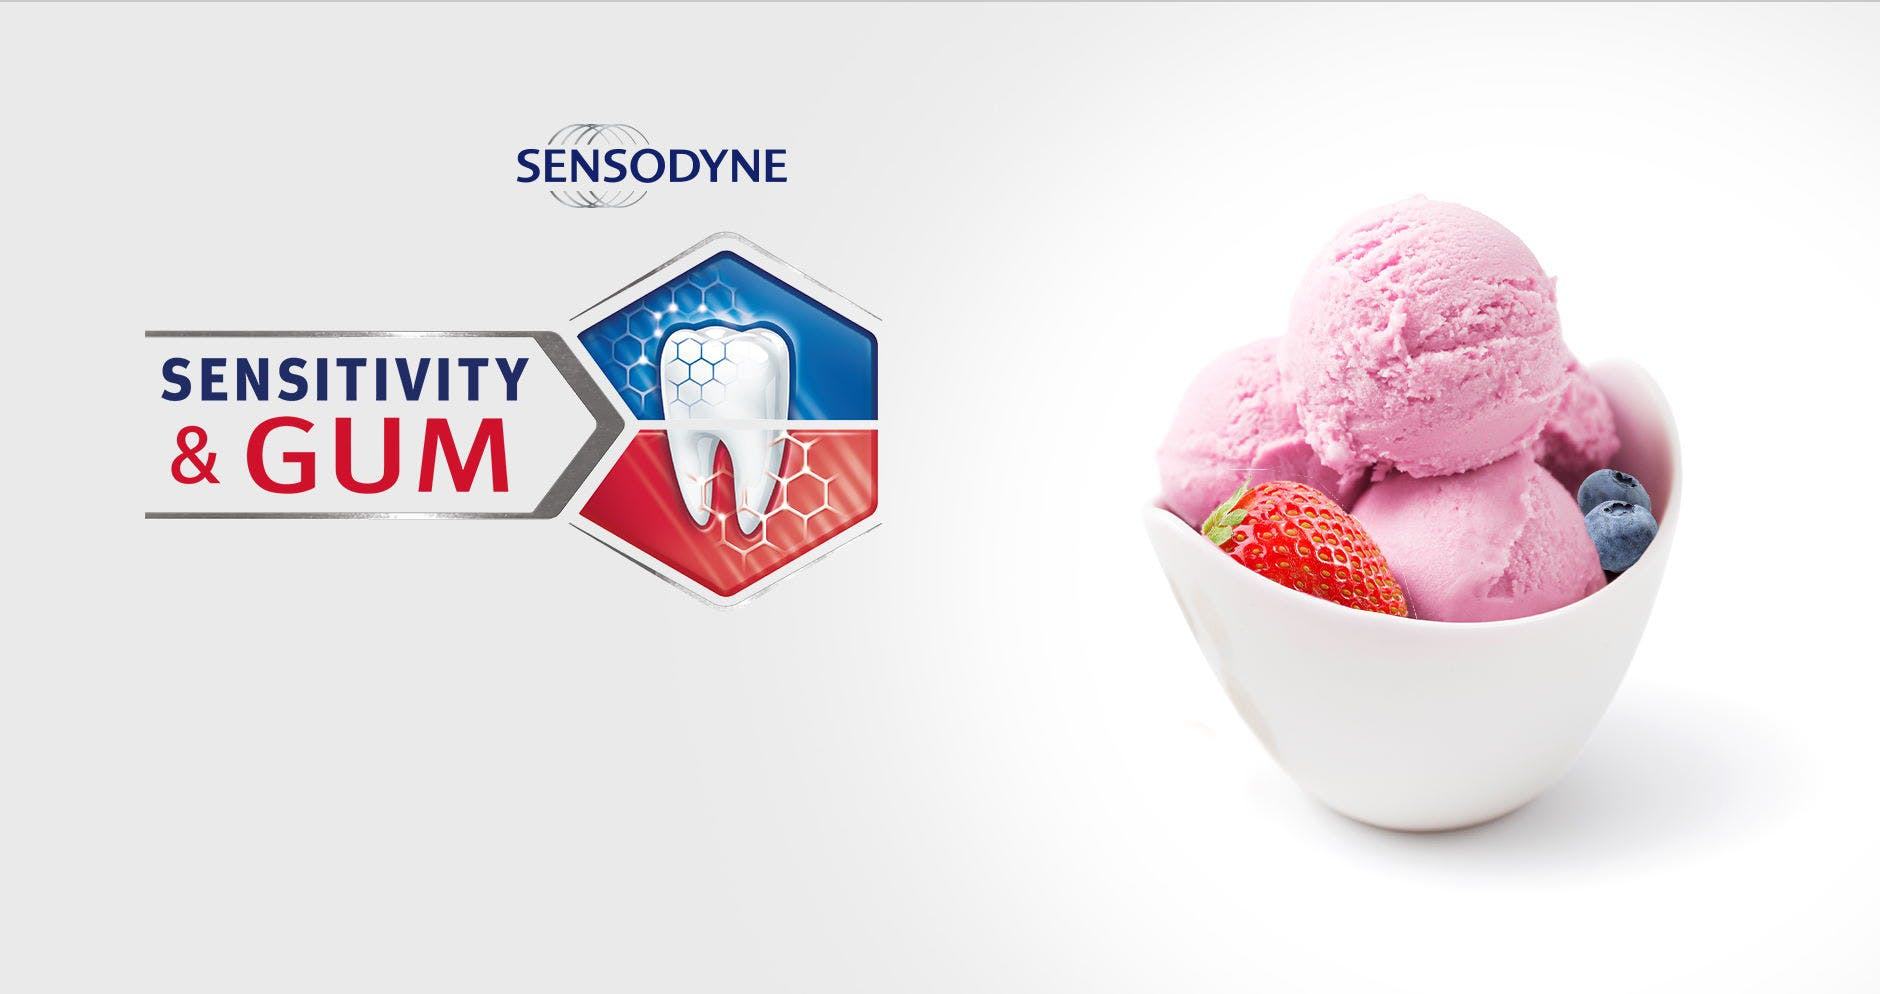 Bowl of ice cream and berries with Sensodyne Sensitivity & Gum logo